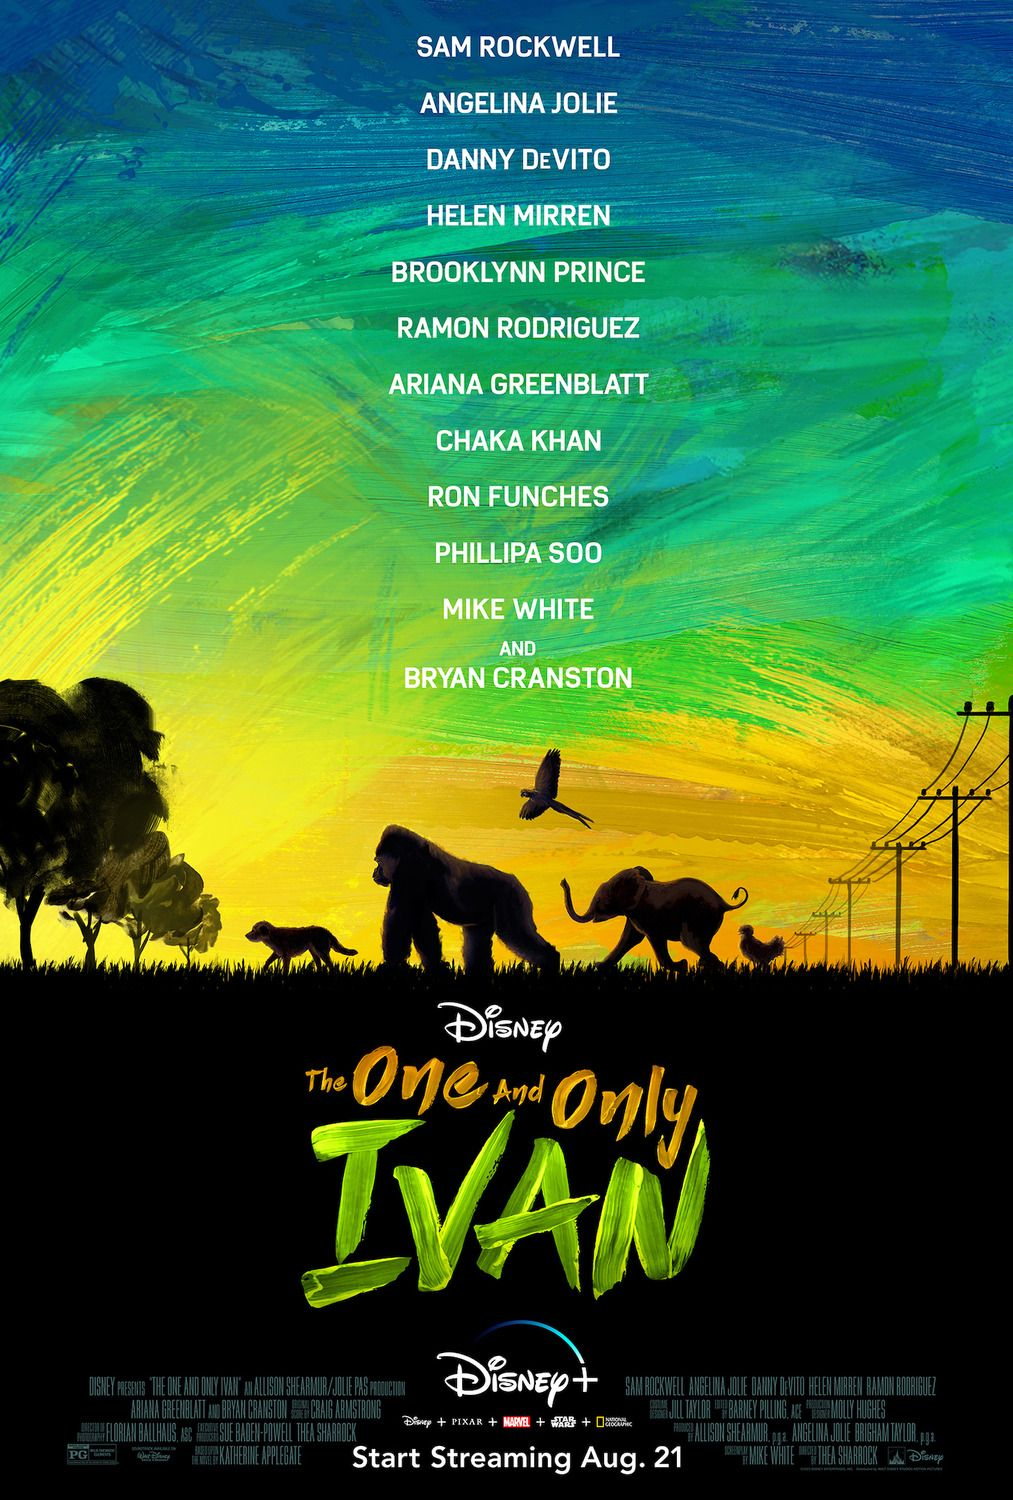 Pin By World Wide On Posters One And Only Ivan Bryan Cranston Disney Plus